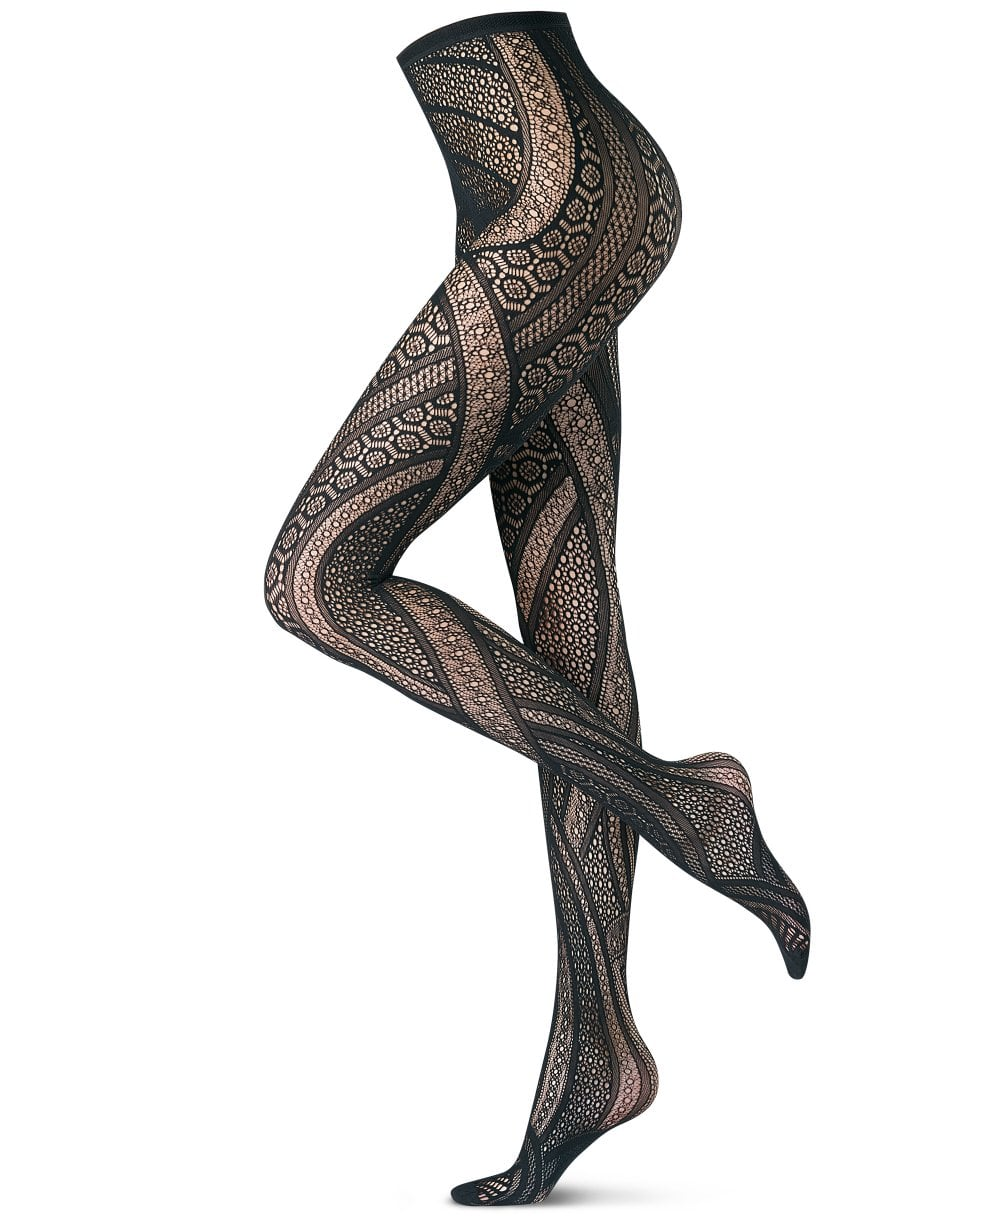 8bfc49db0992a Oroblu Fishnet Pattern Tights - Tights from luxury-legs.com UK